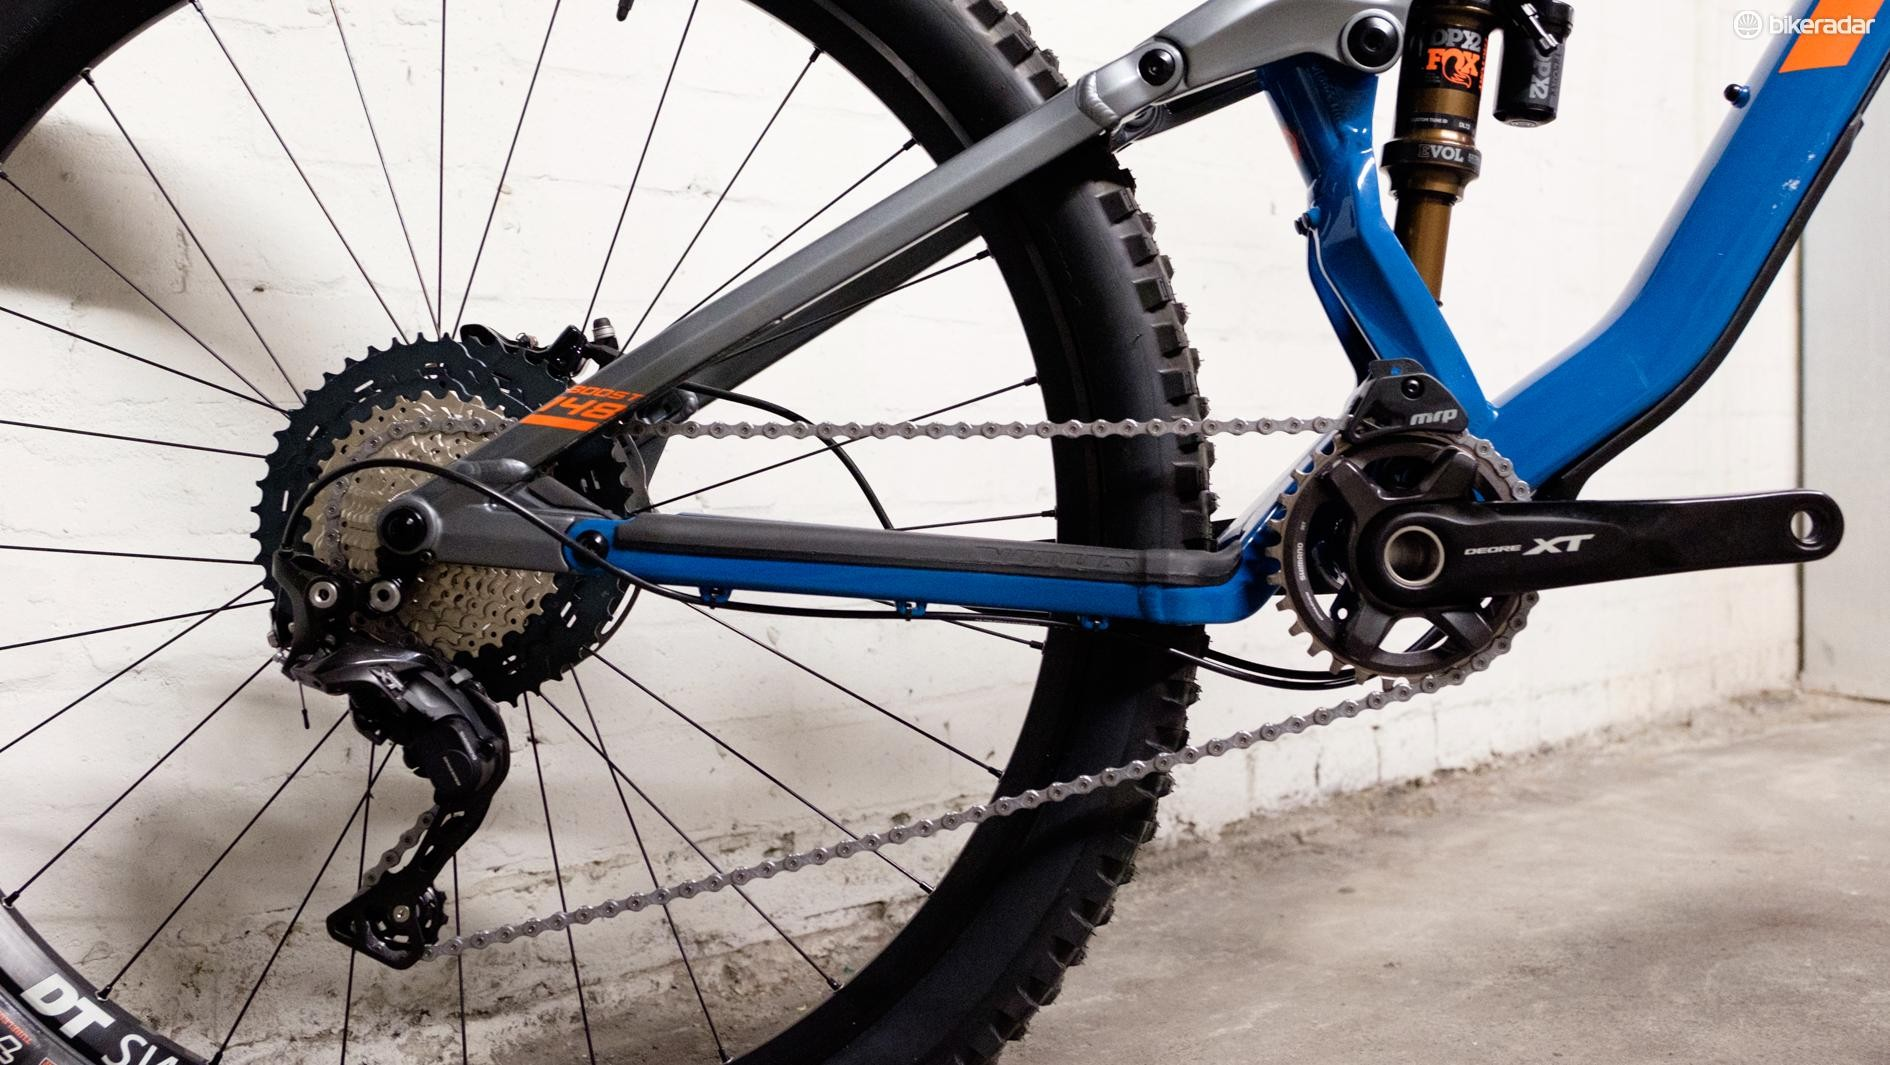 Shimano XT might not have the bling of XTR, but it's a damn good performer